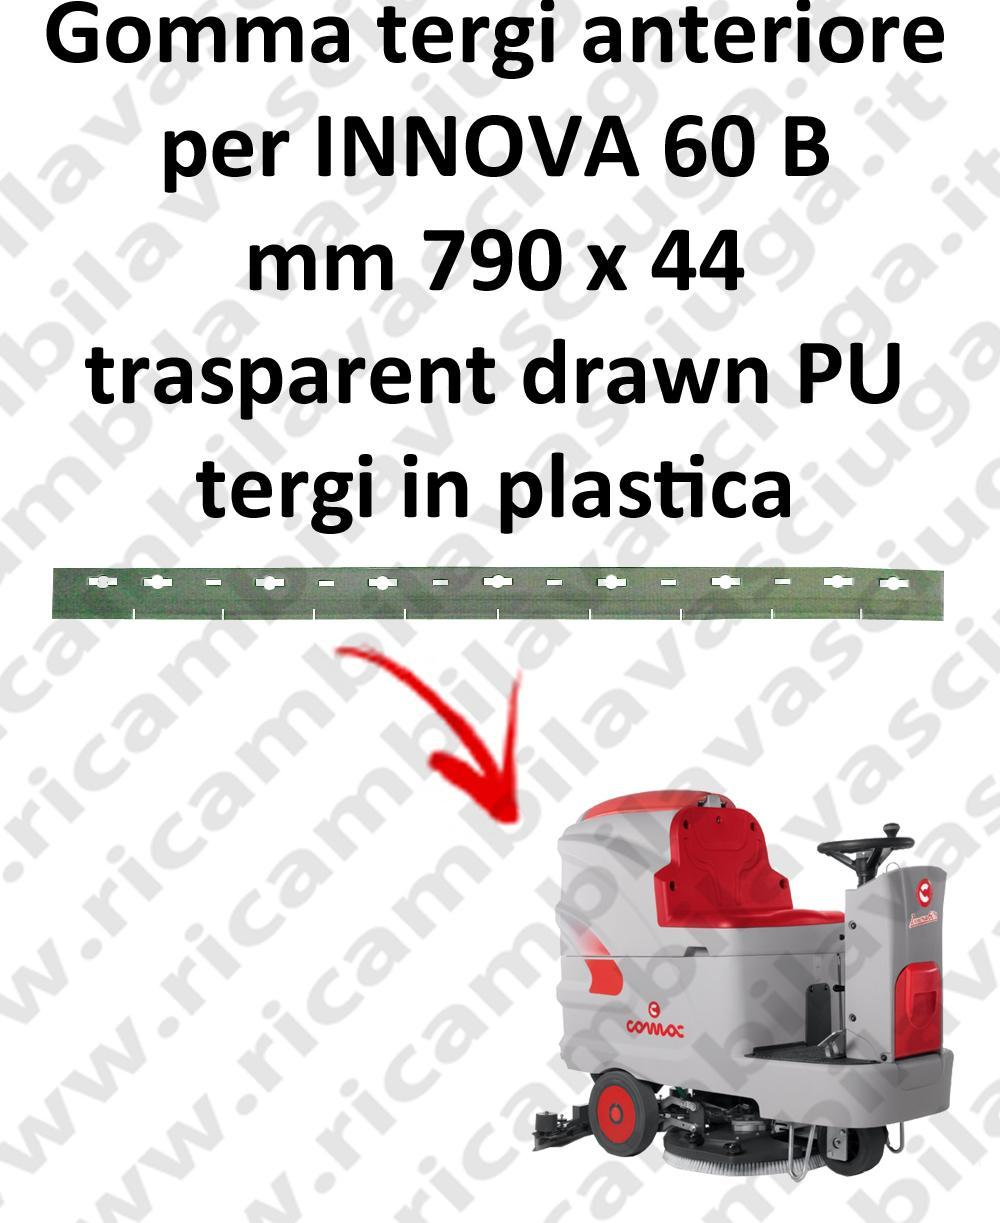 INNOVA 60 B Front Squeegee rubber for COMAC accessories, reaplacement, spare parts,o scrubber dryer squeegee